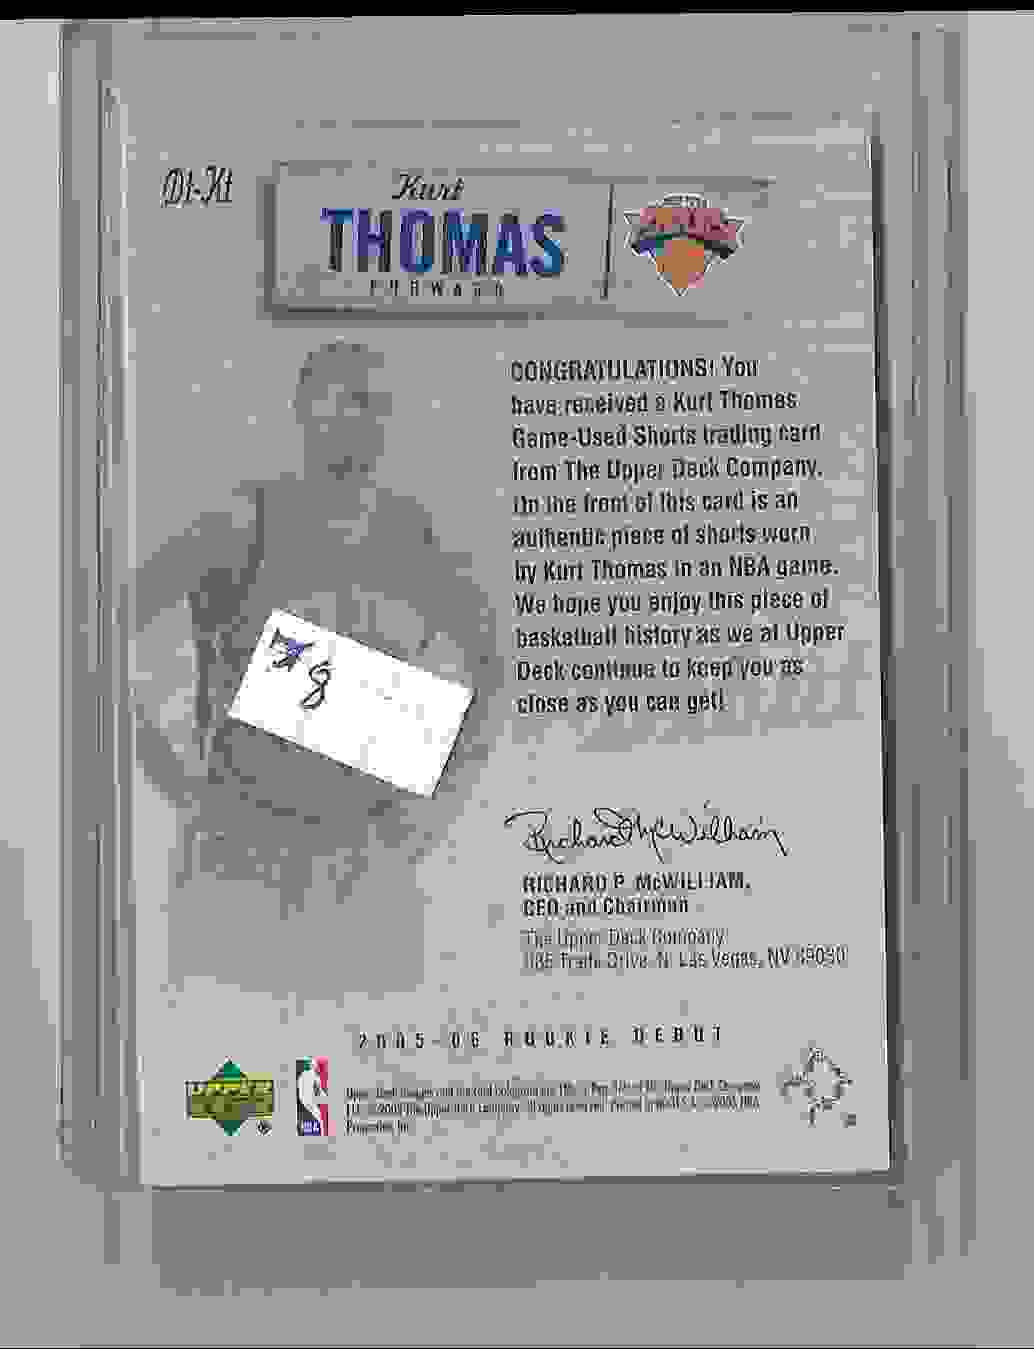 2005-06 Upper Deck Rookie Debut Threads Kurt Thomas #KT card back image